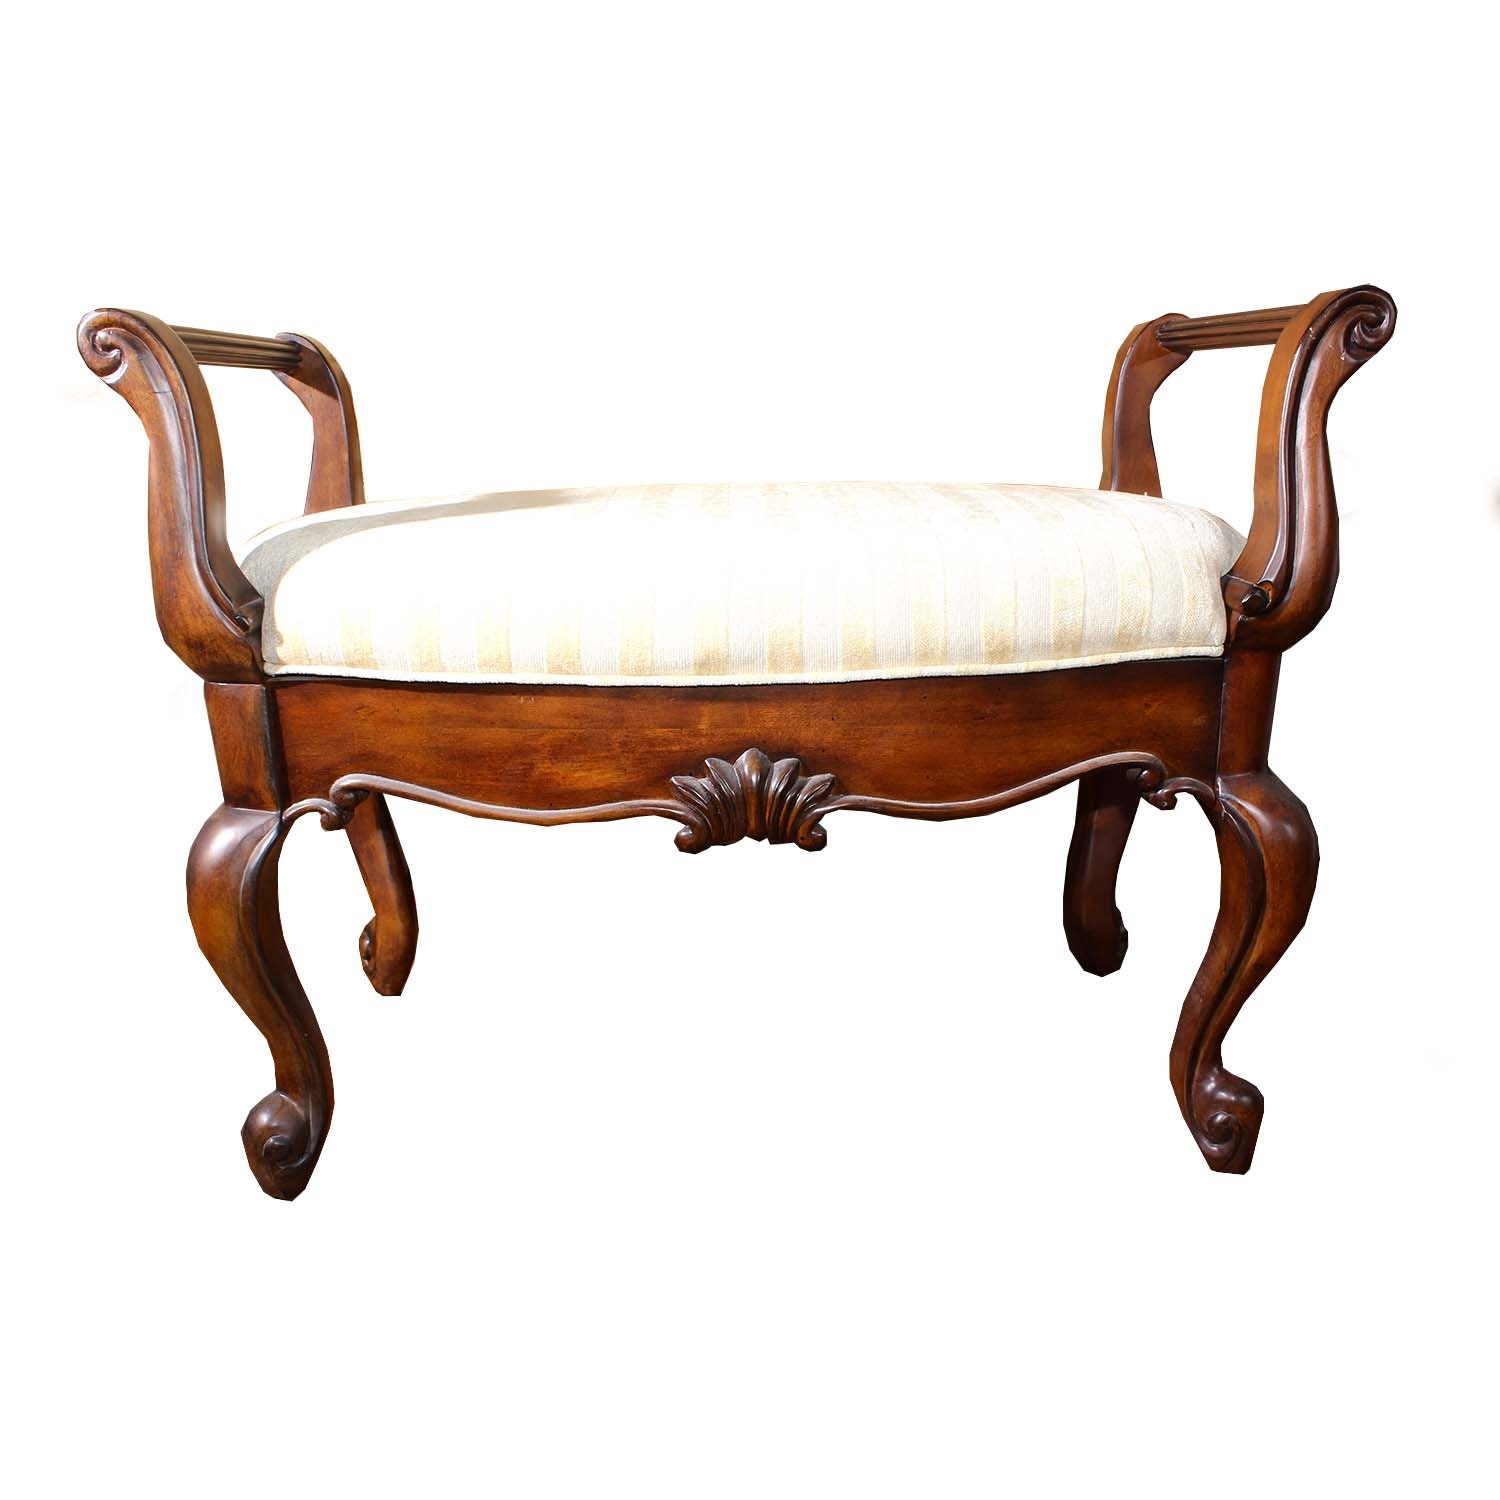 Mahogany Upholstered Bedroom Bench